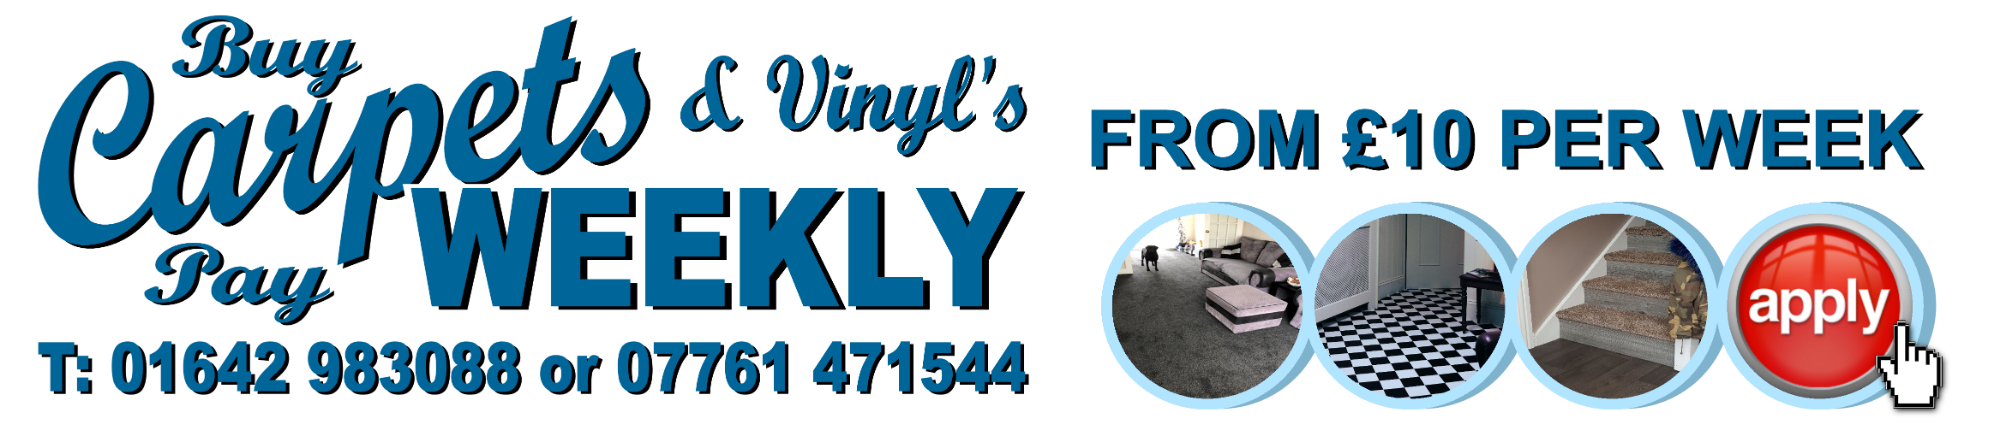 Carpets Weekly available throughout the North East and North Yorkshire. Carpets and Vinyl Flooring from £10 a week.